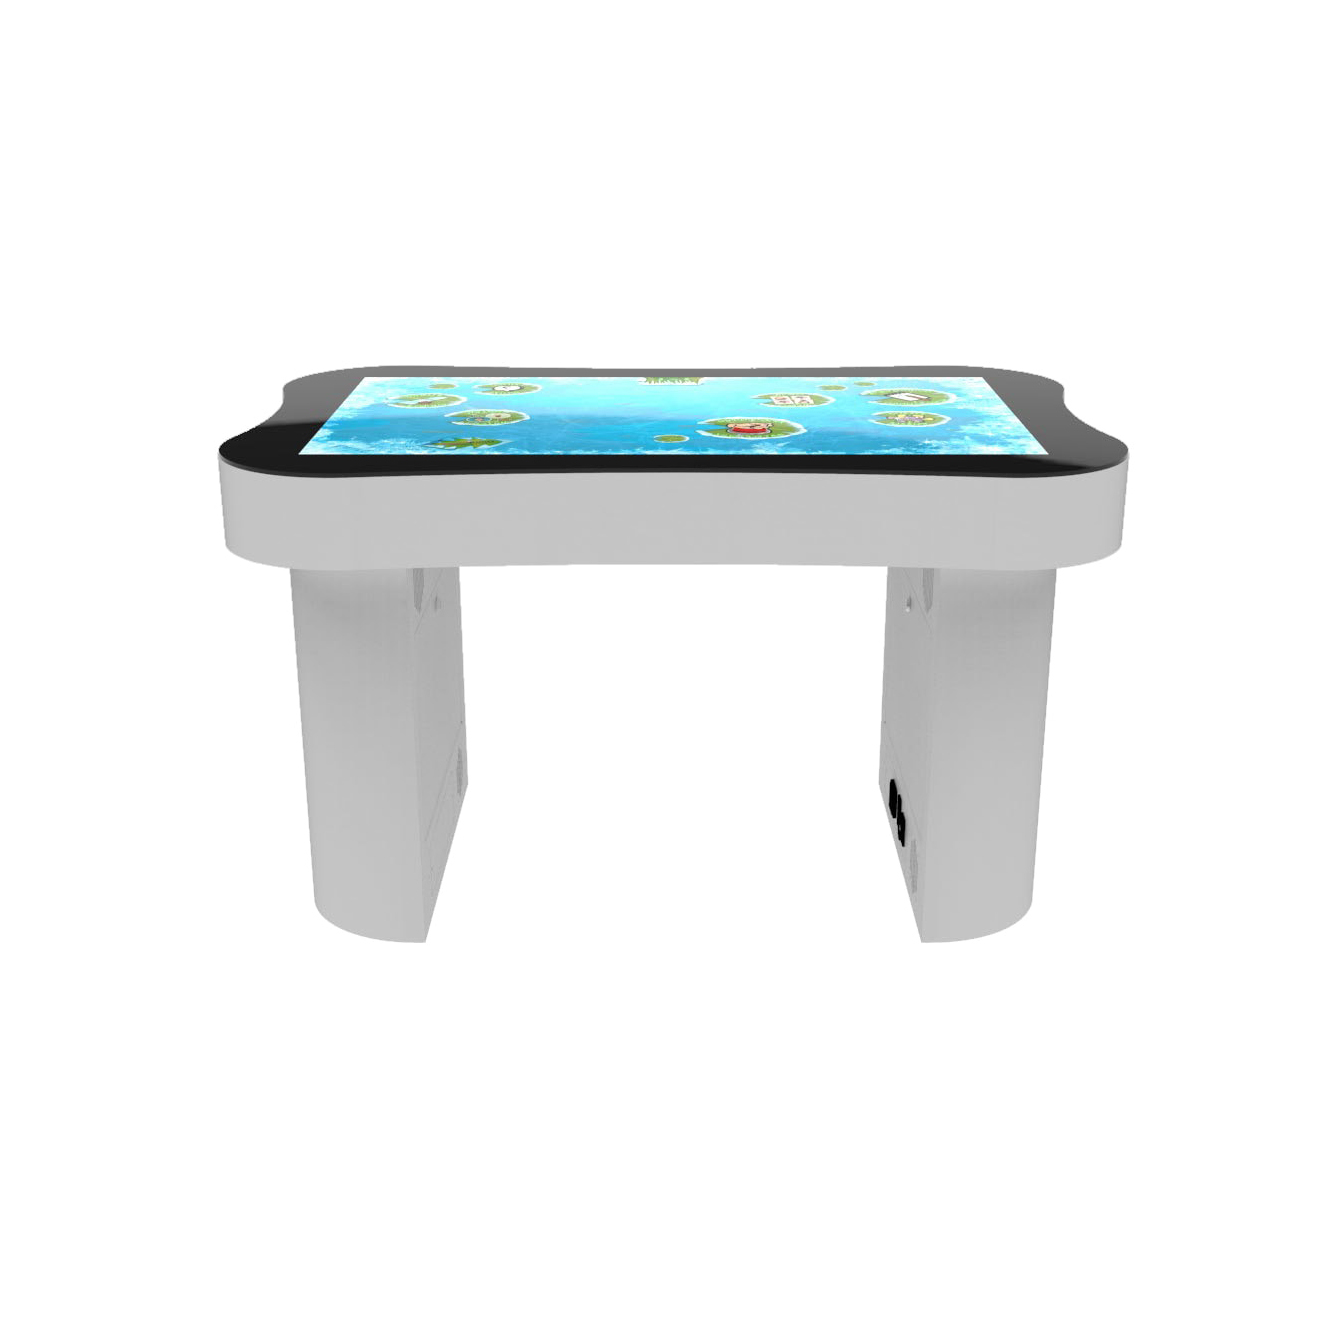 Kids-Touch-Table-2-1.jpg